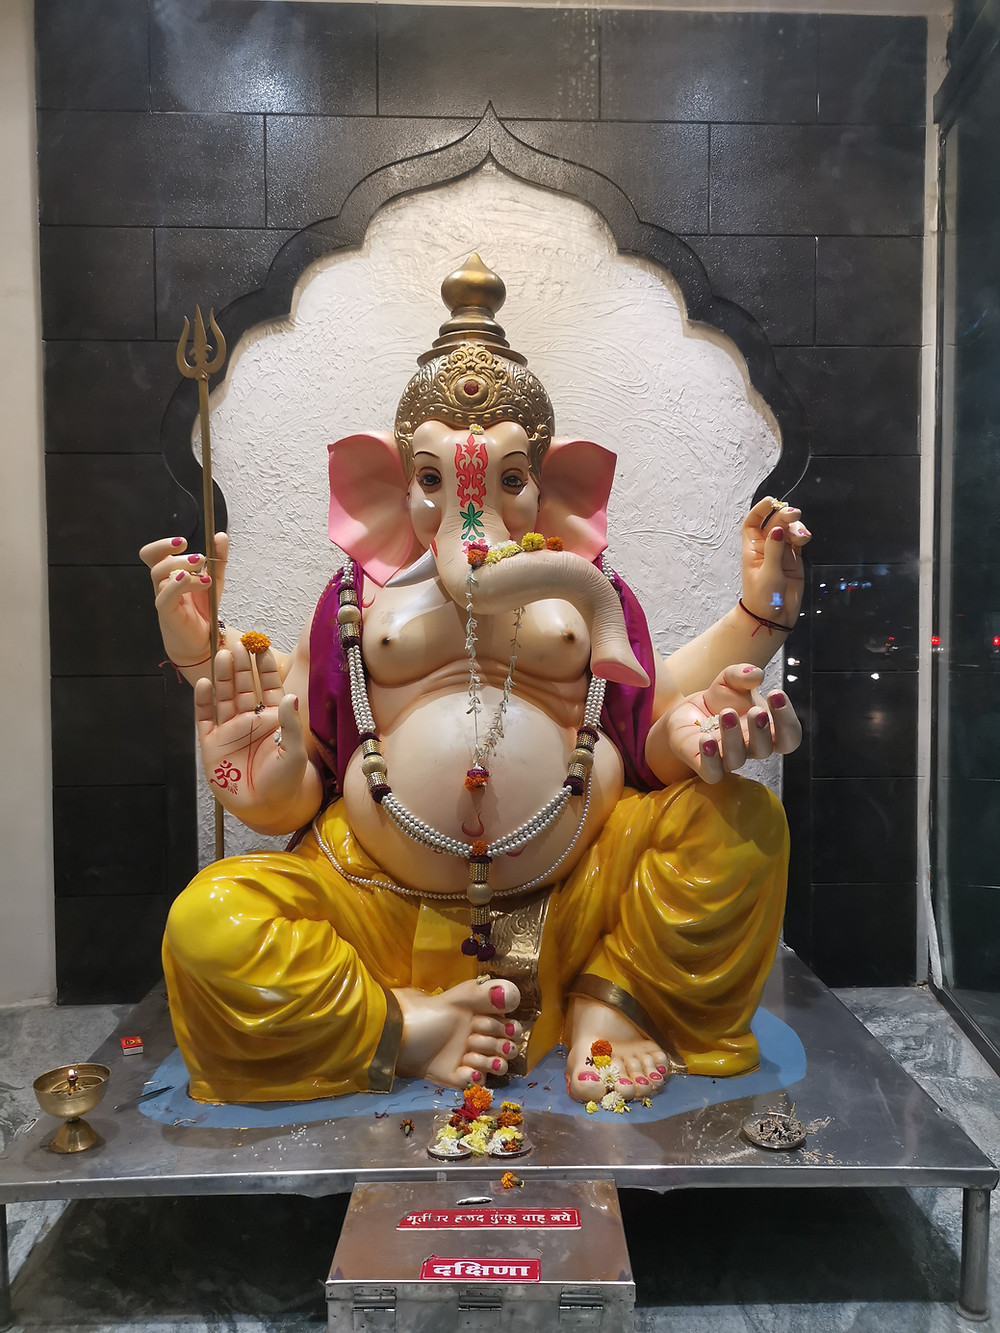 Our local shrine to Ganesh (one of many) He is widely adored in Pune